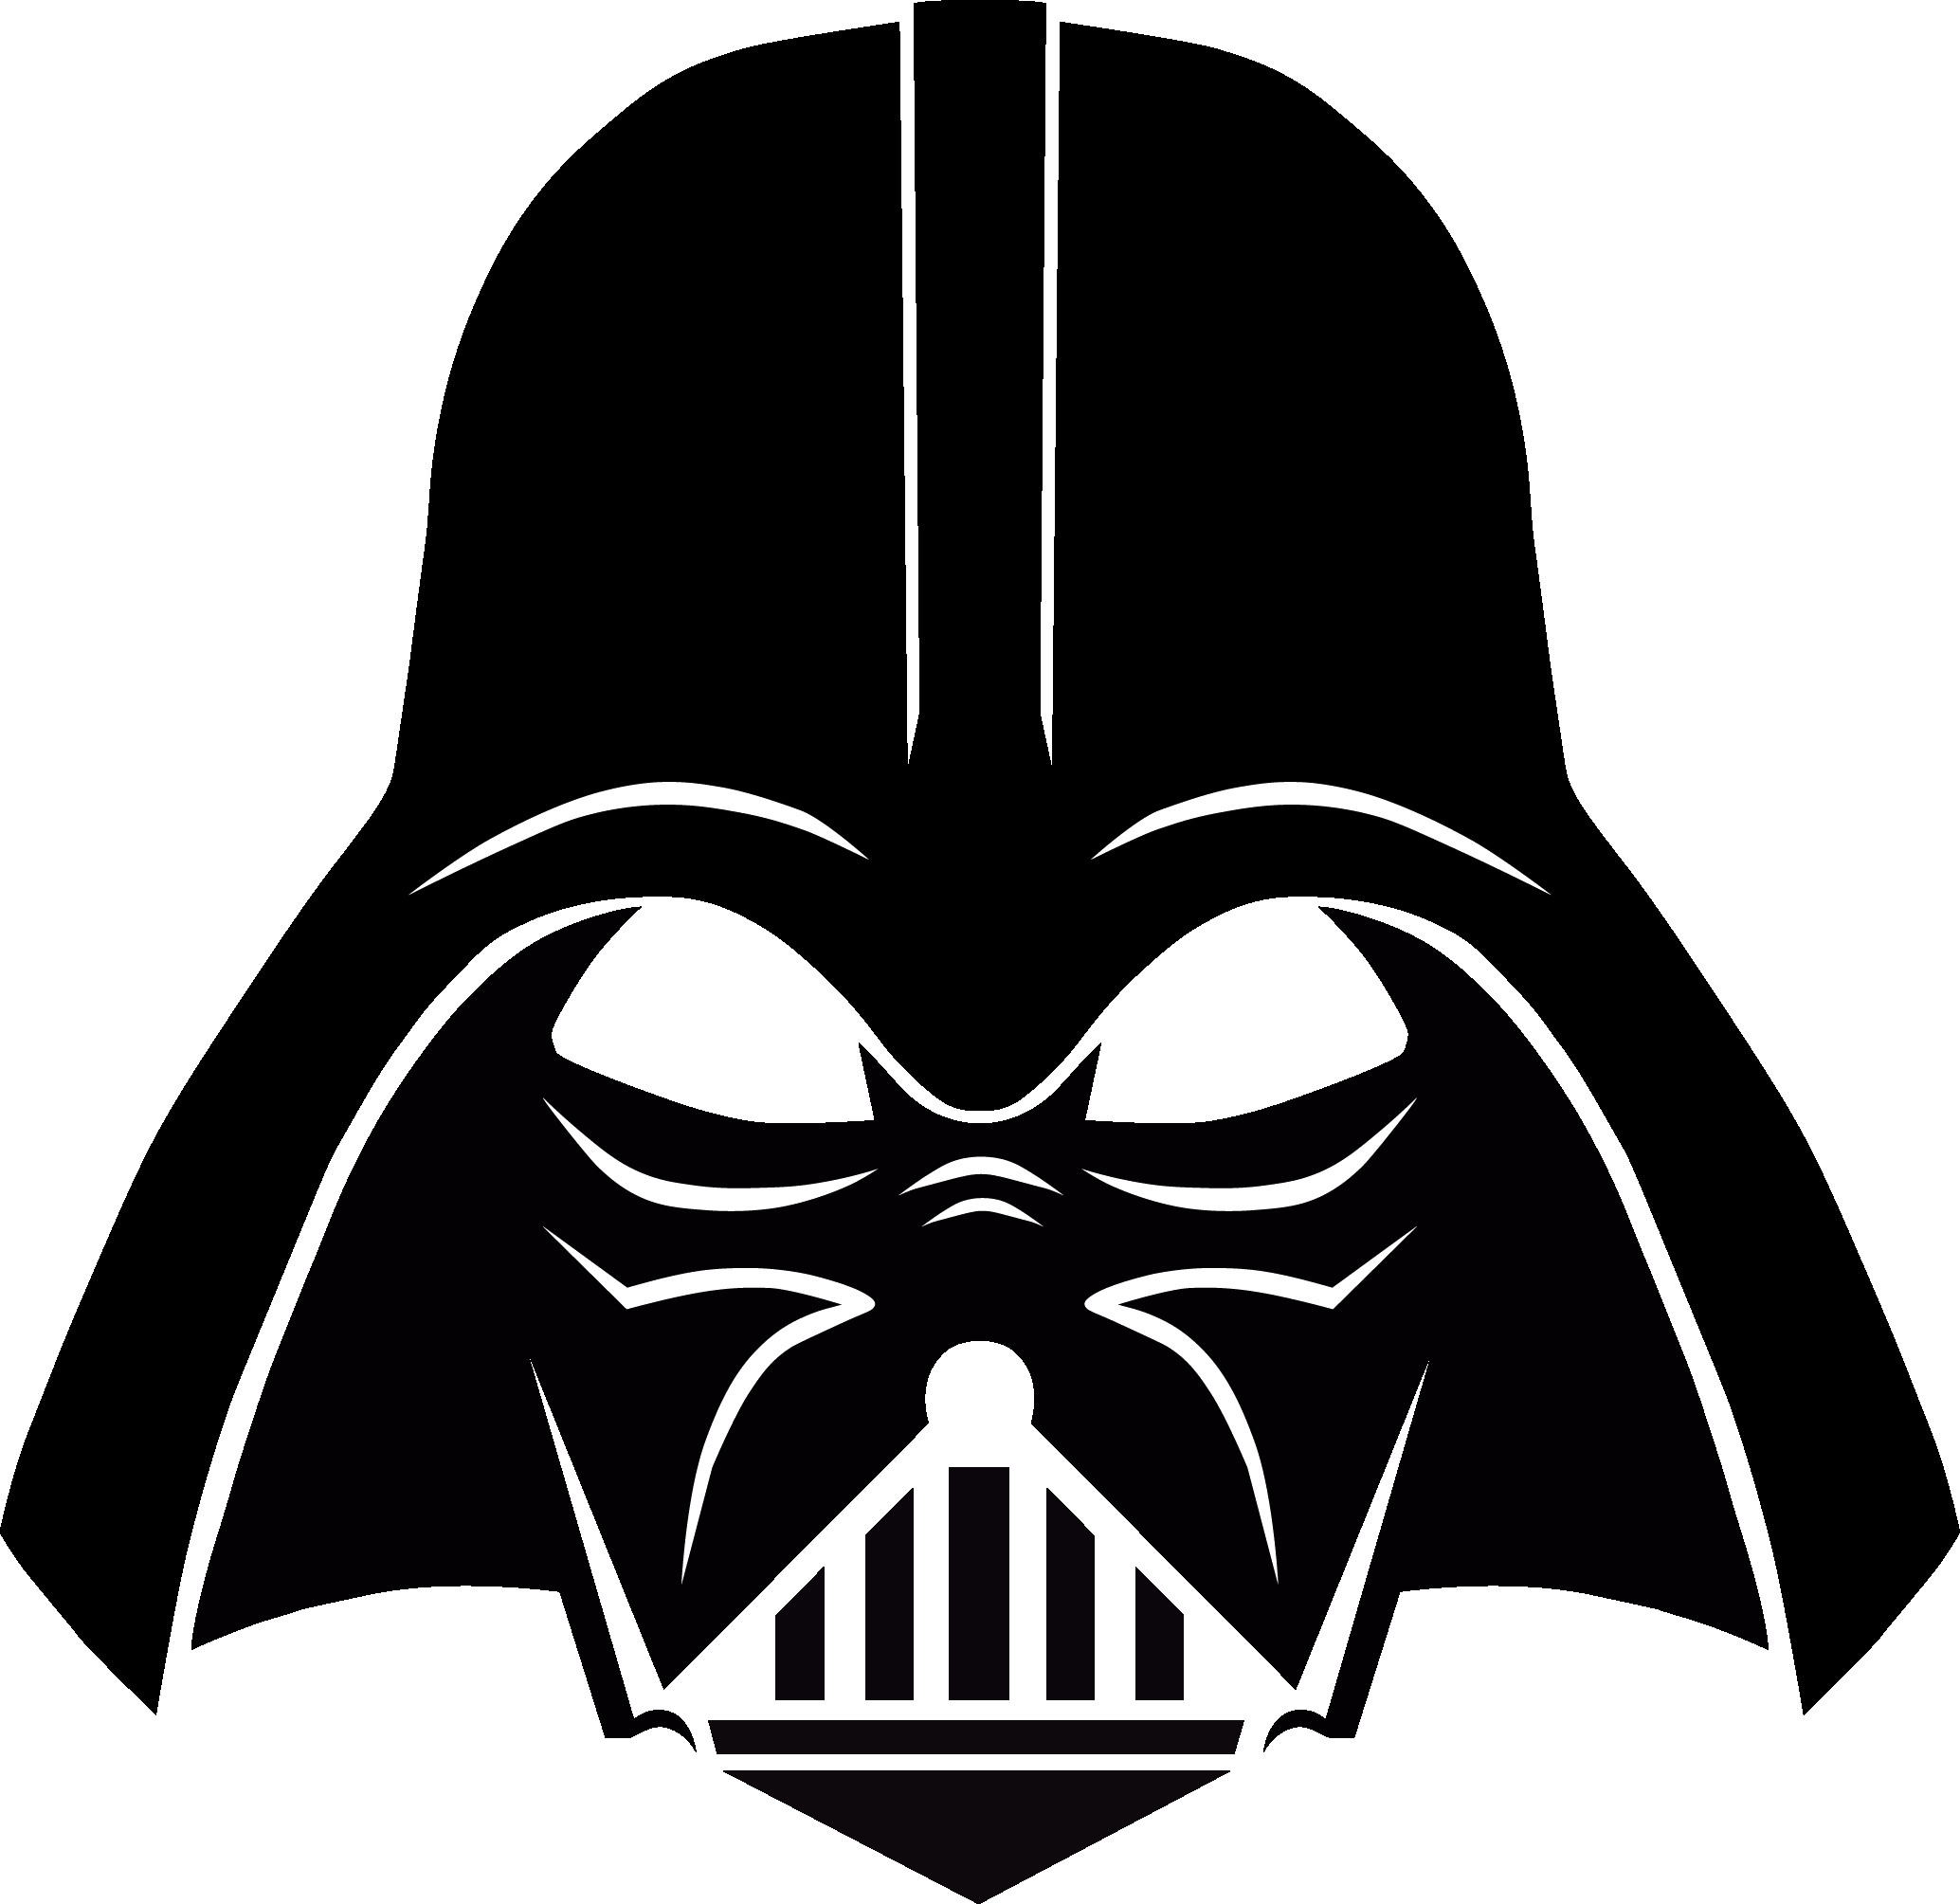 Darth vader clipart kylo ren. Mask coloring pages shrewd